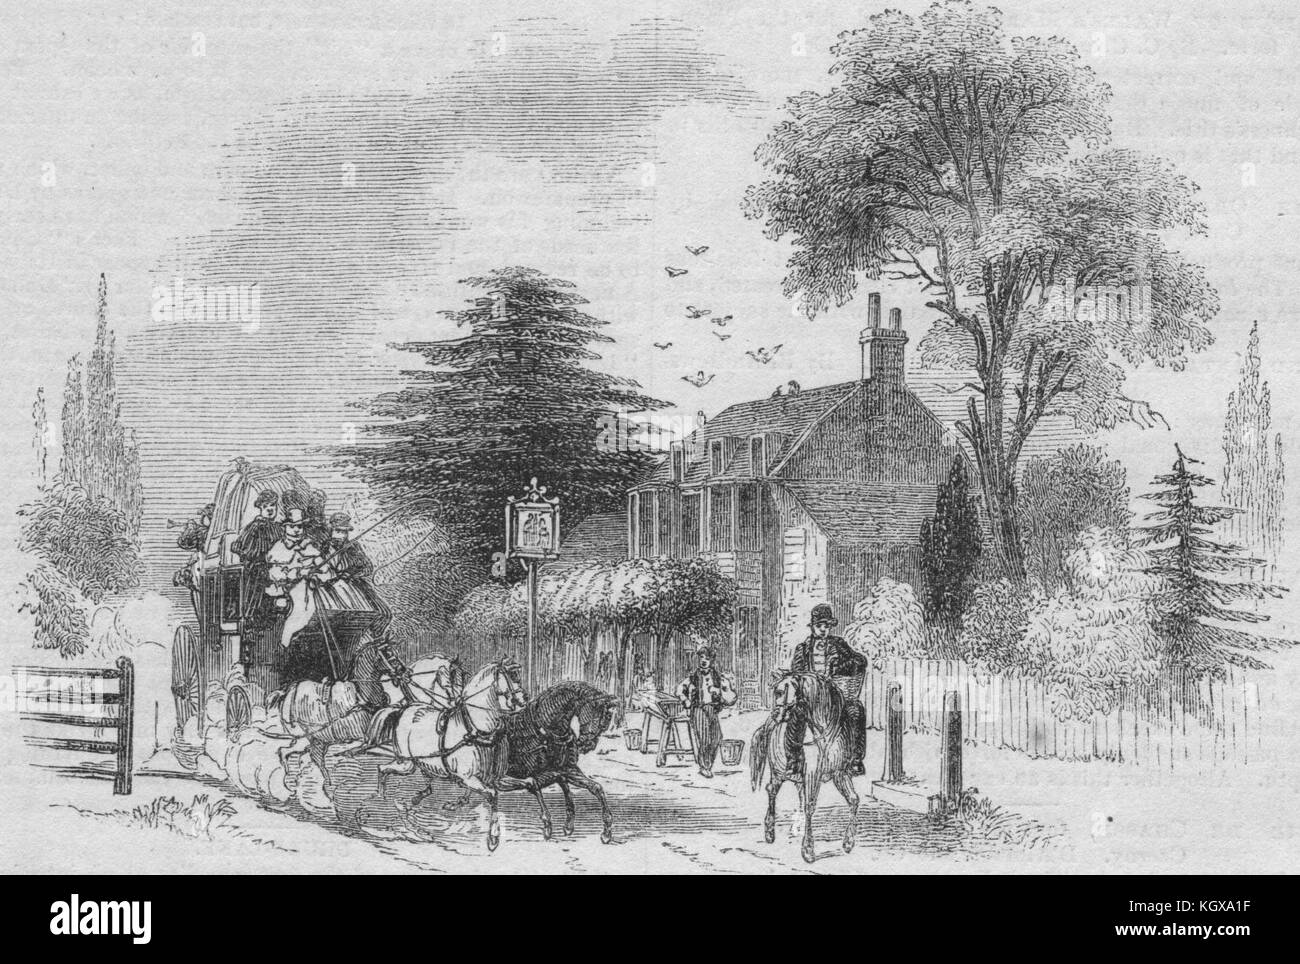 Gad's Hill. Kent 1843. The Illustrated London News - Stock Image